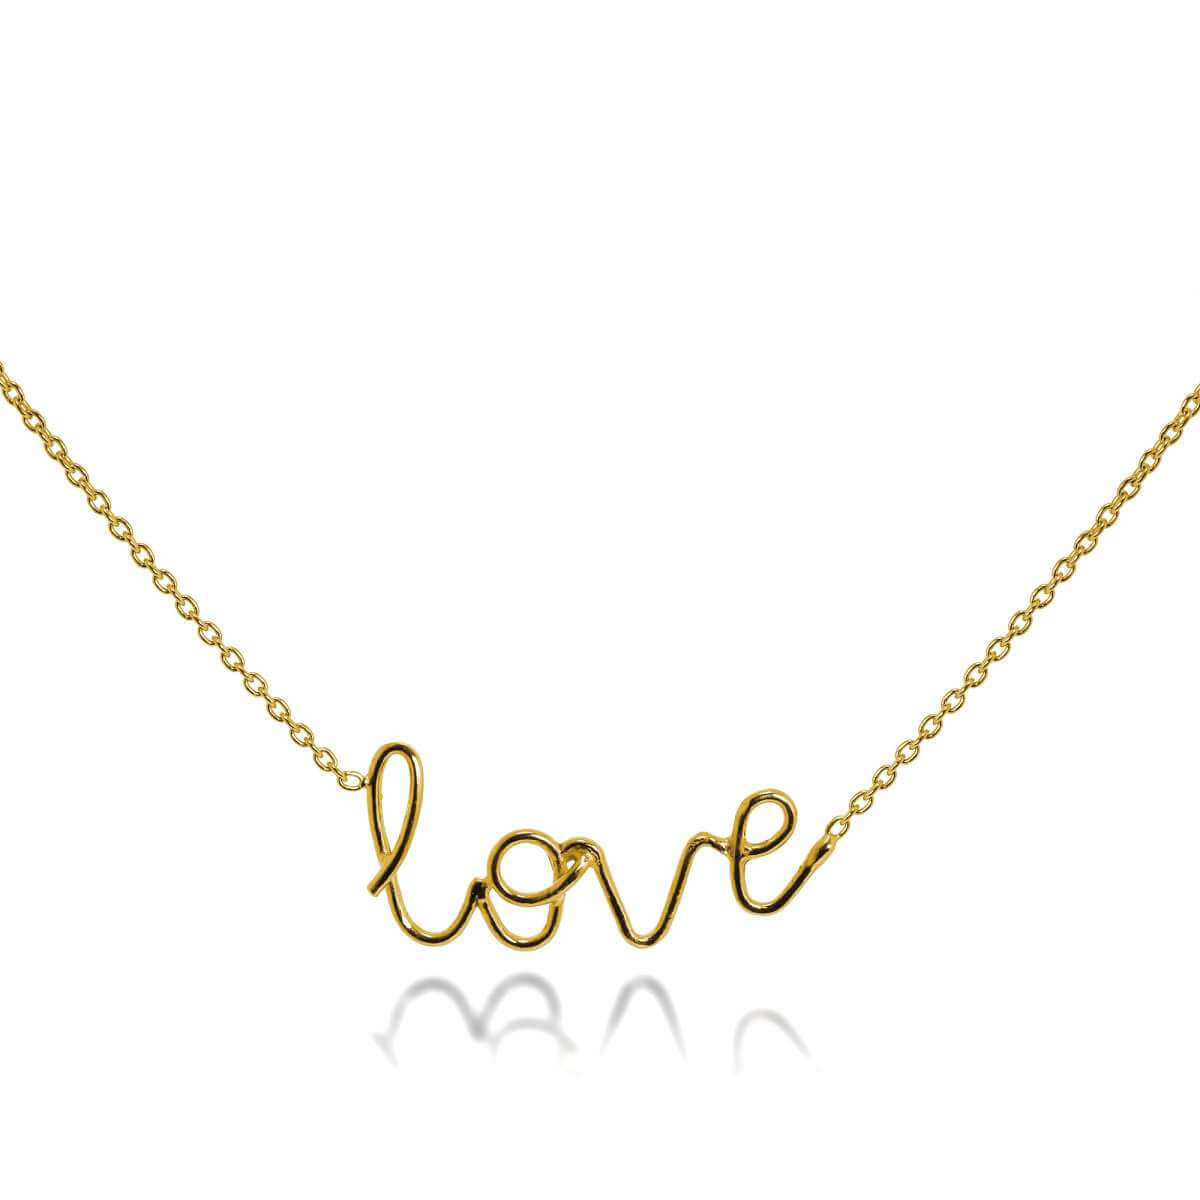 Gold Plated Sterling Silver Love Necklace 16+2 Inches